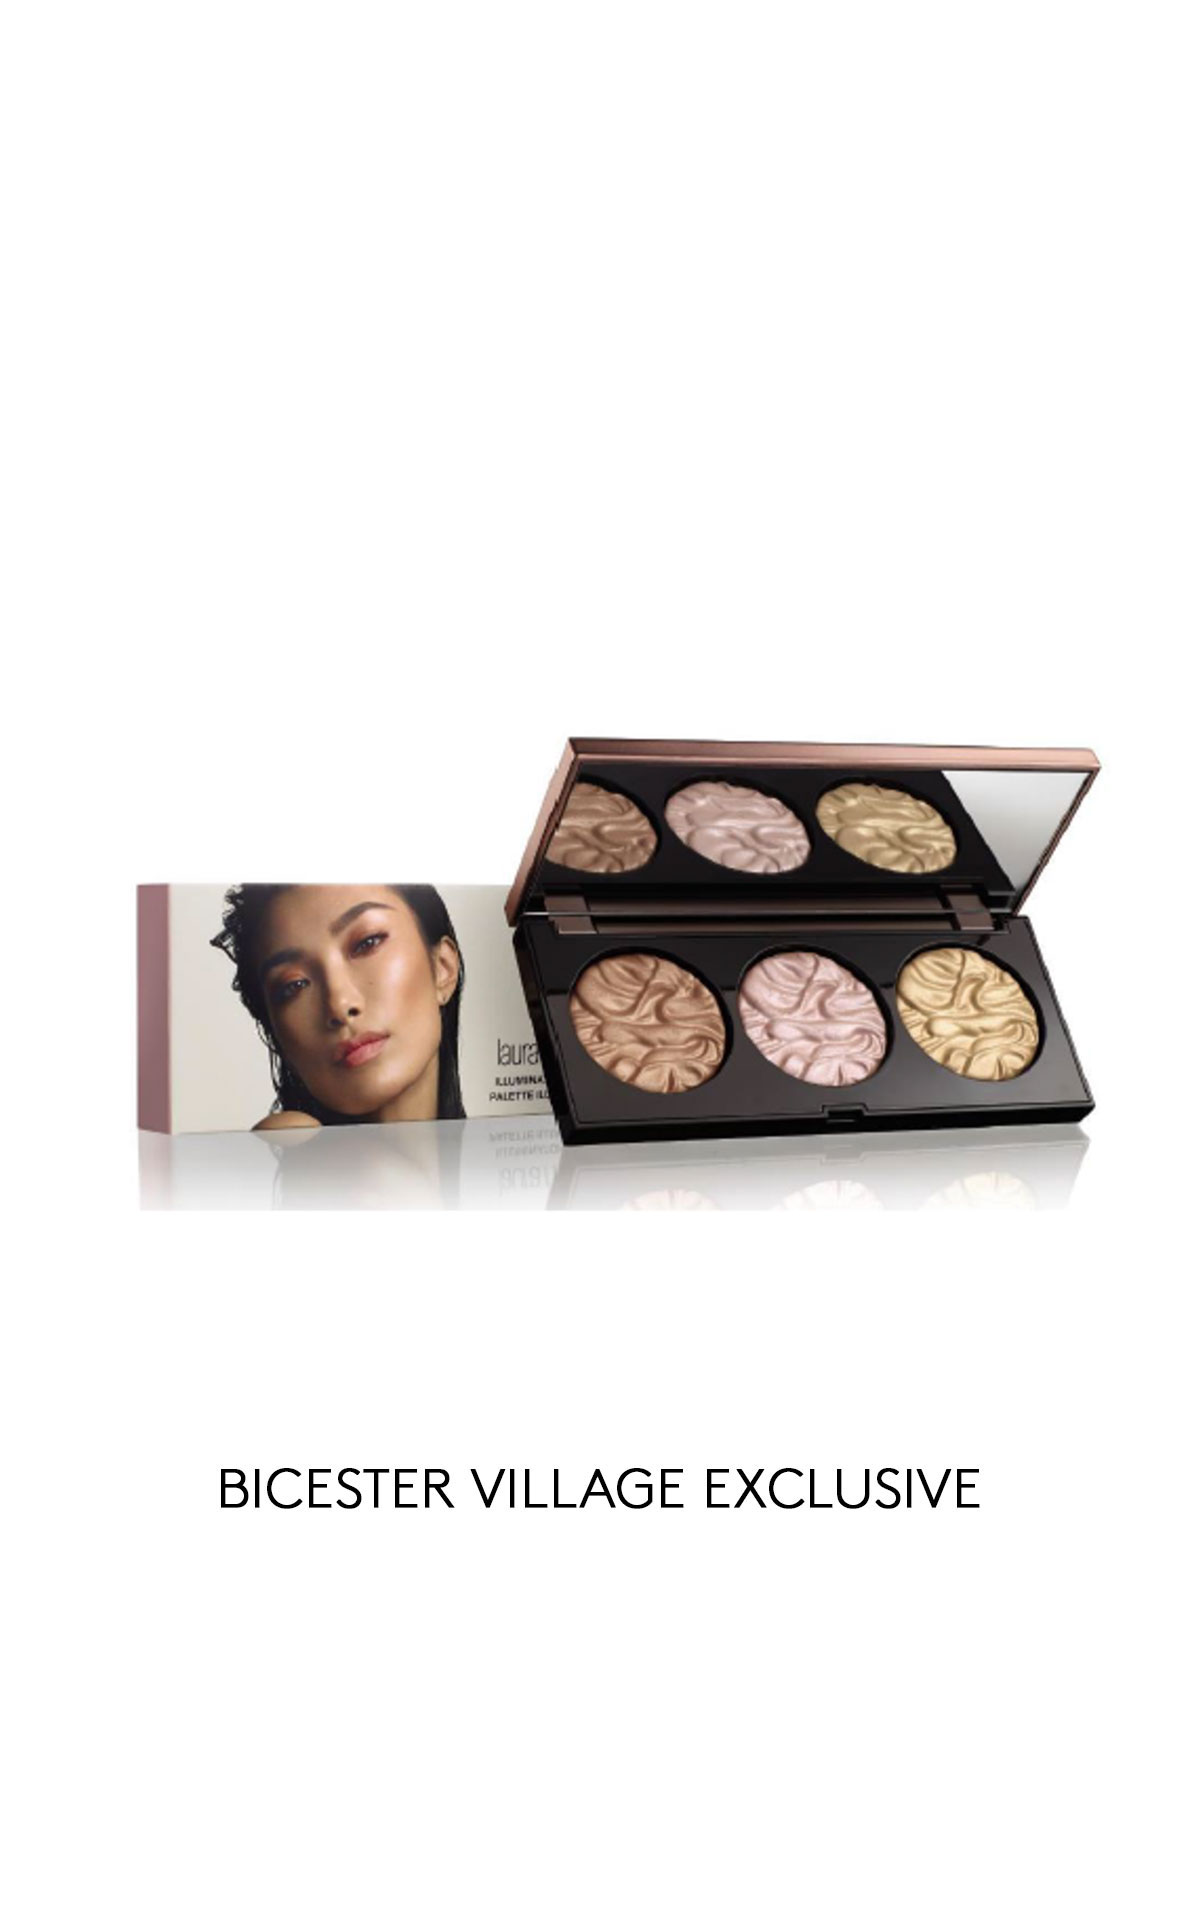 Beauté Prestige International Laura Mercier Mood lights face illuminator trio from Bicester Village